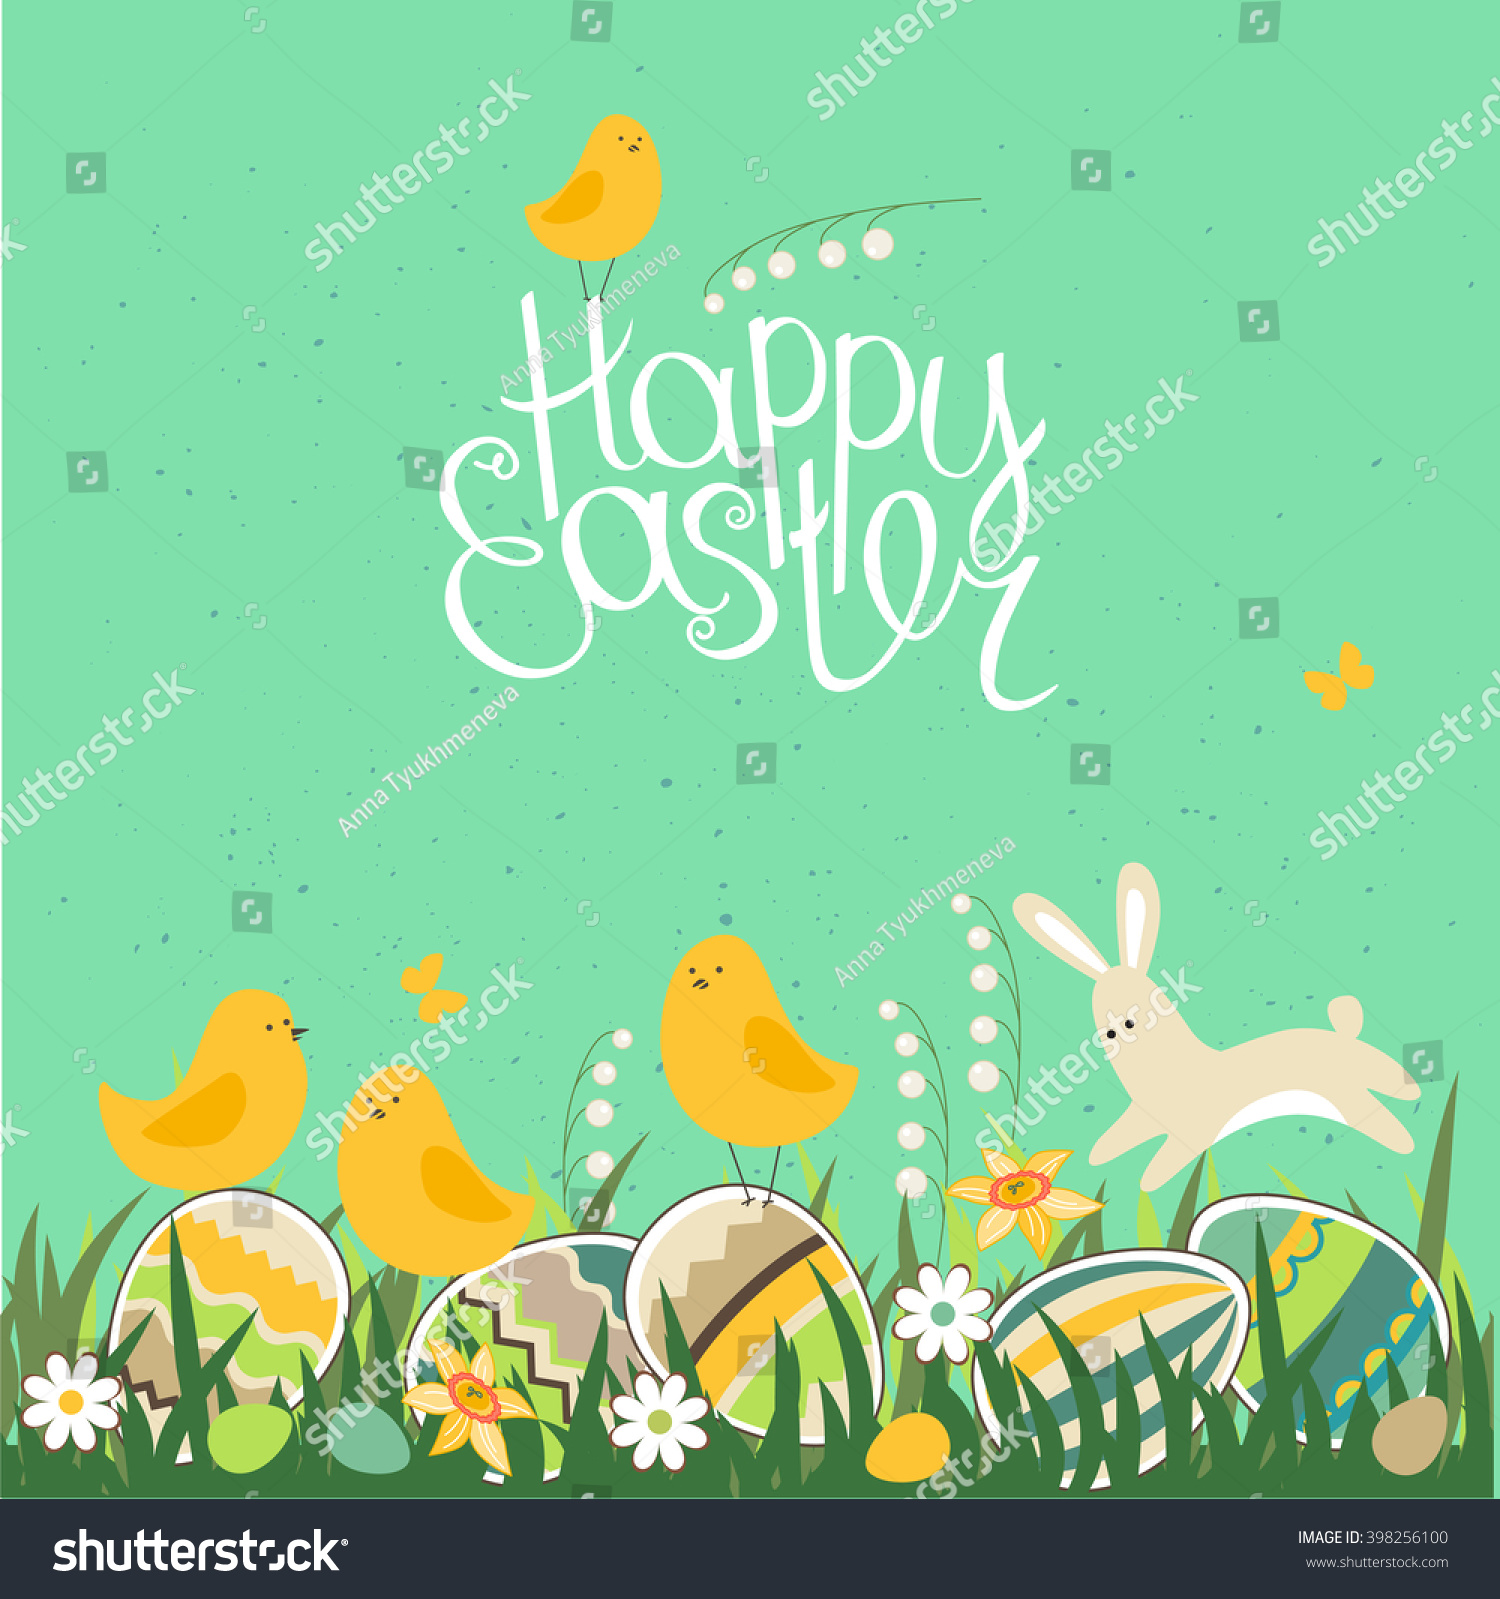 Royalty Free Spring Greeting Card Phrase Happy 398256100 Stock